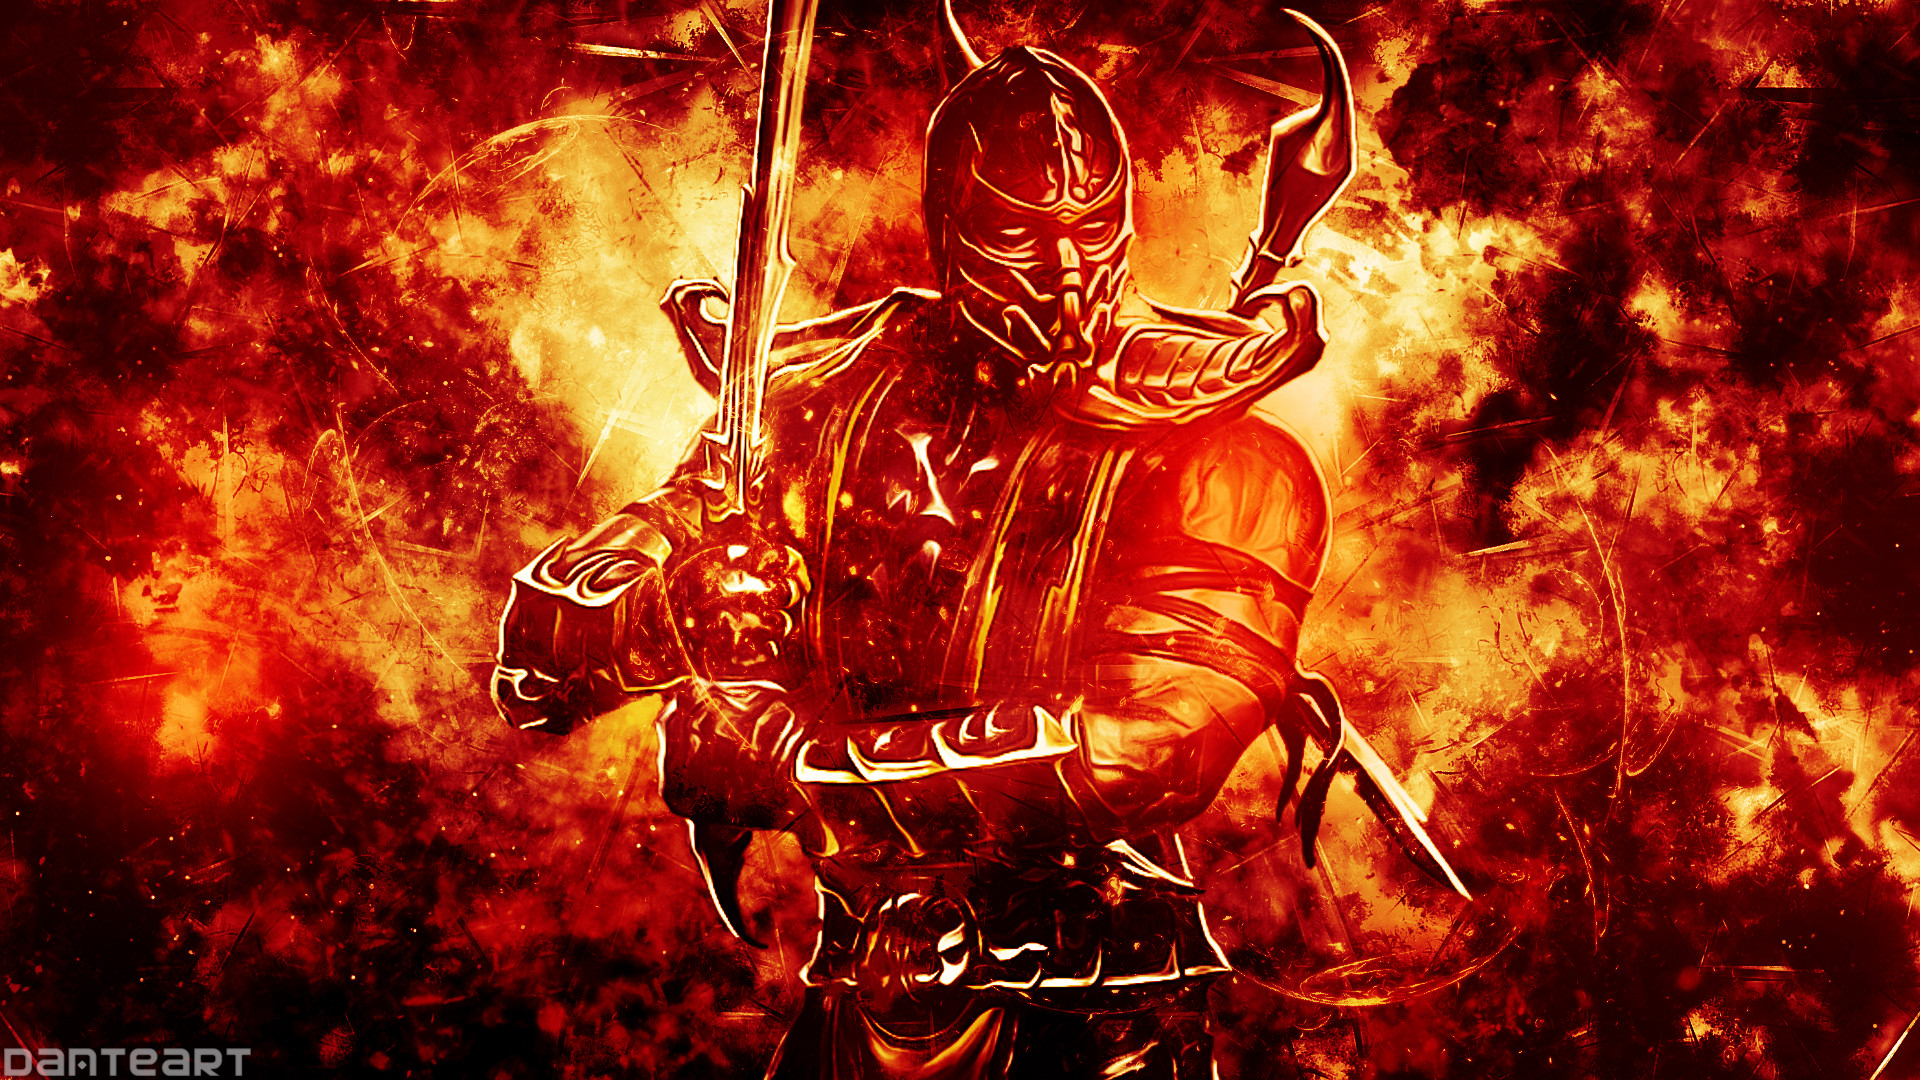 Mortal kombat wallpapers scorpion 65 images - Mortal kombat scorpion wallpaper ...